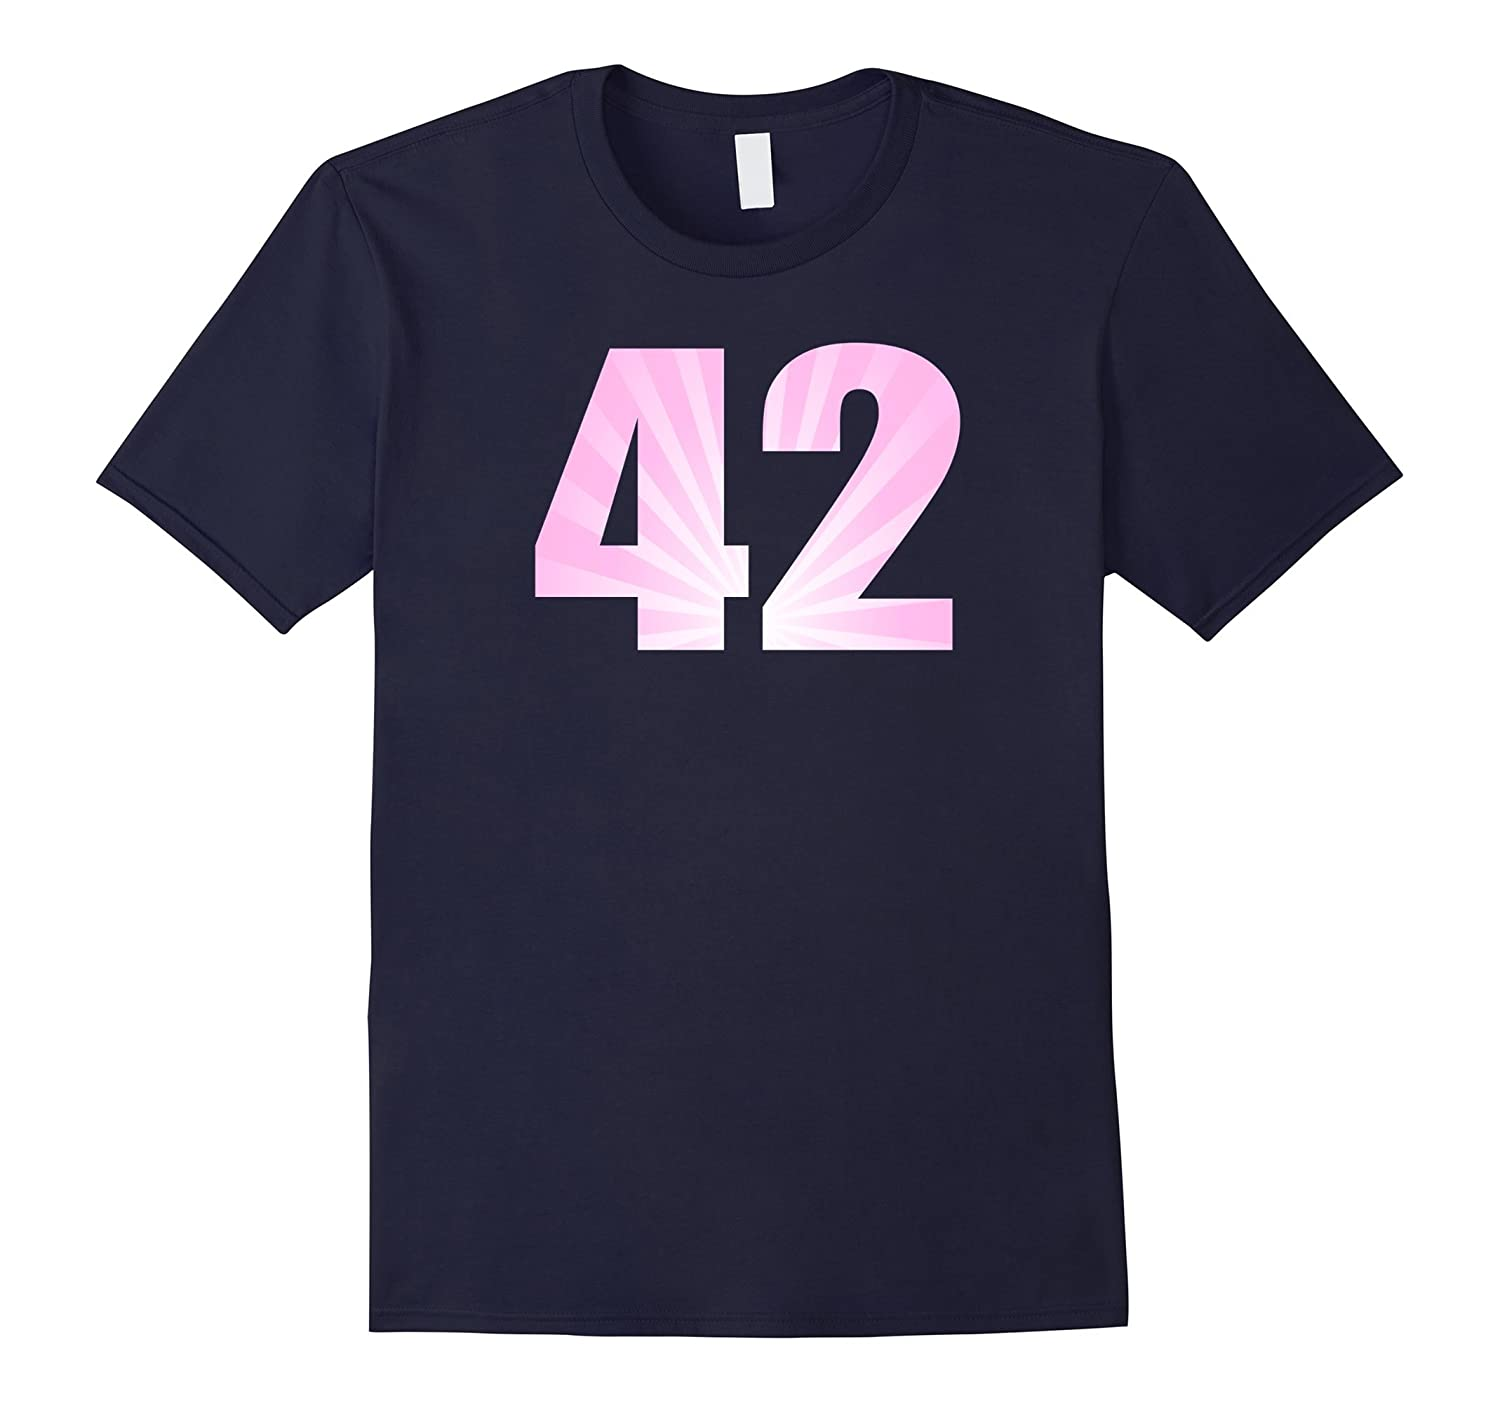 42 Tshirt is the Answer to Life Significant Galaxy Number-Vaci